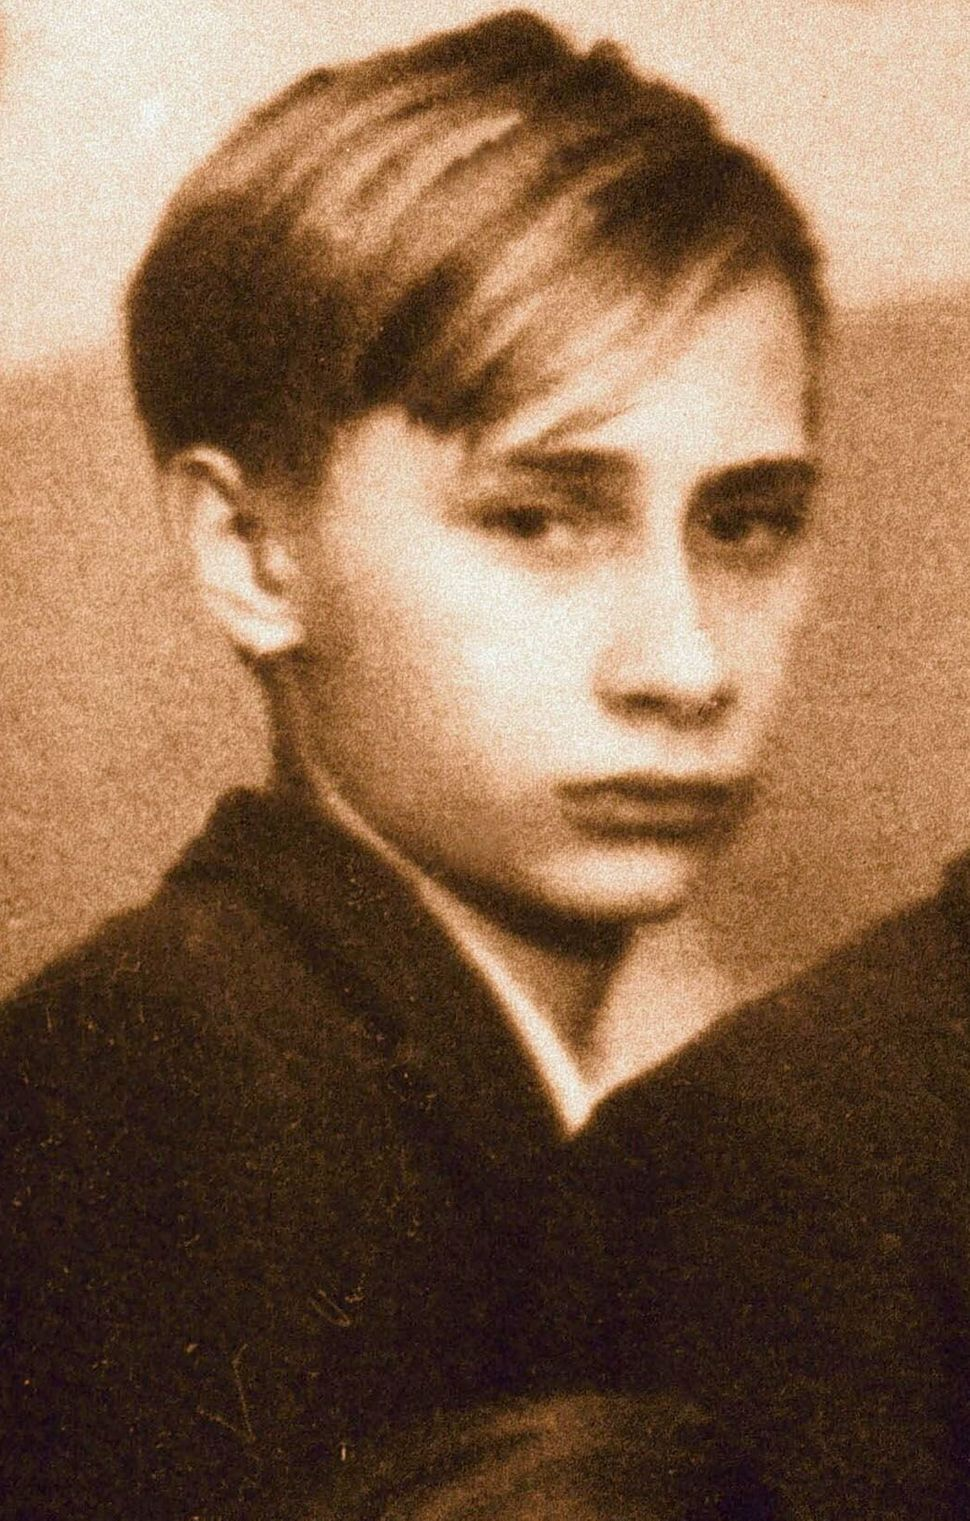 A class photo with Vladimir Putin, dated 1966, in St. Petersburg, Russia.